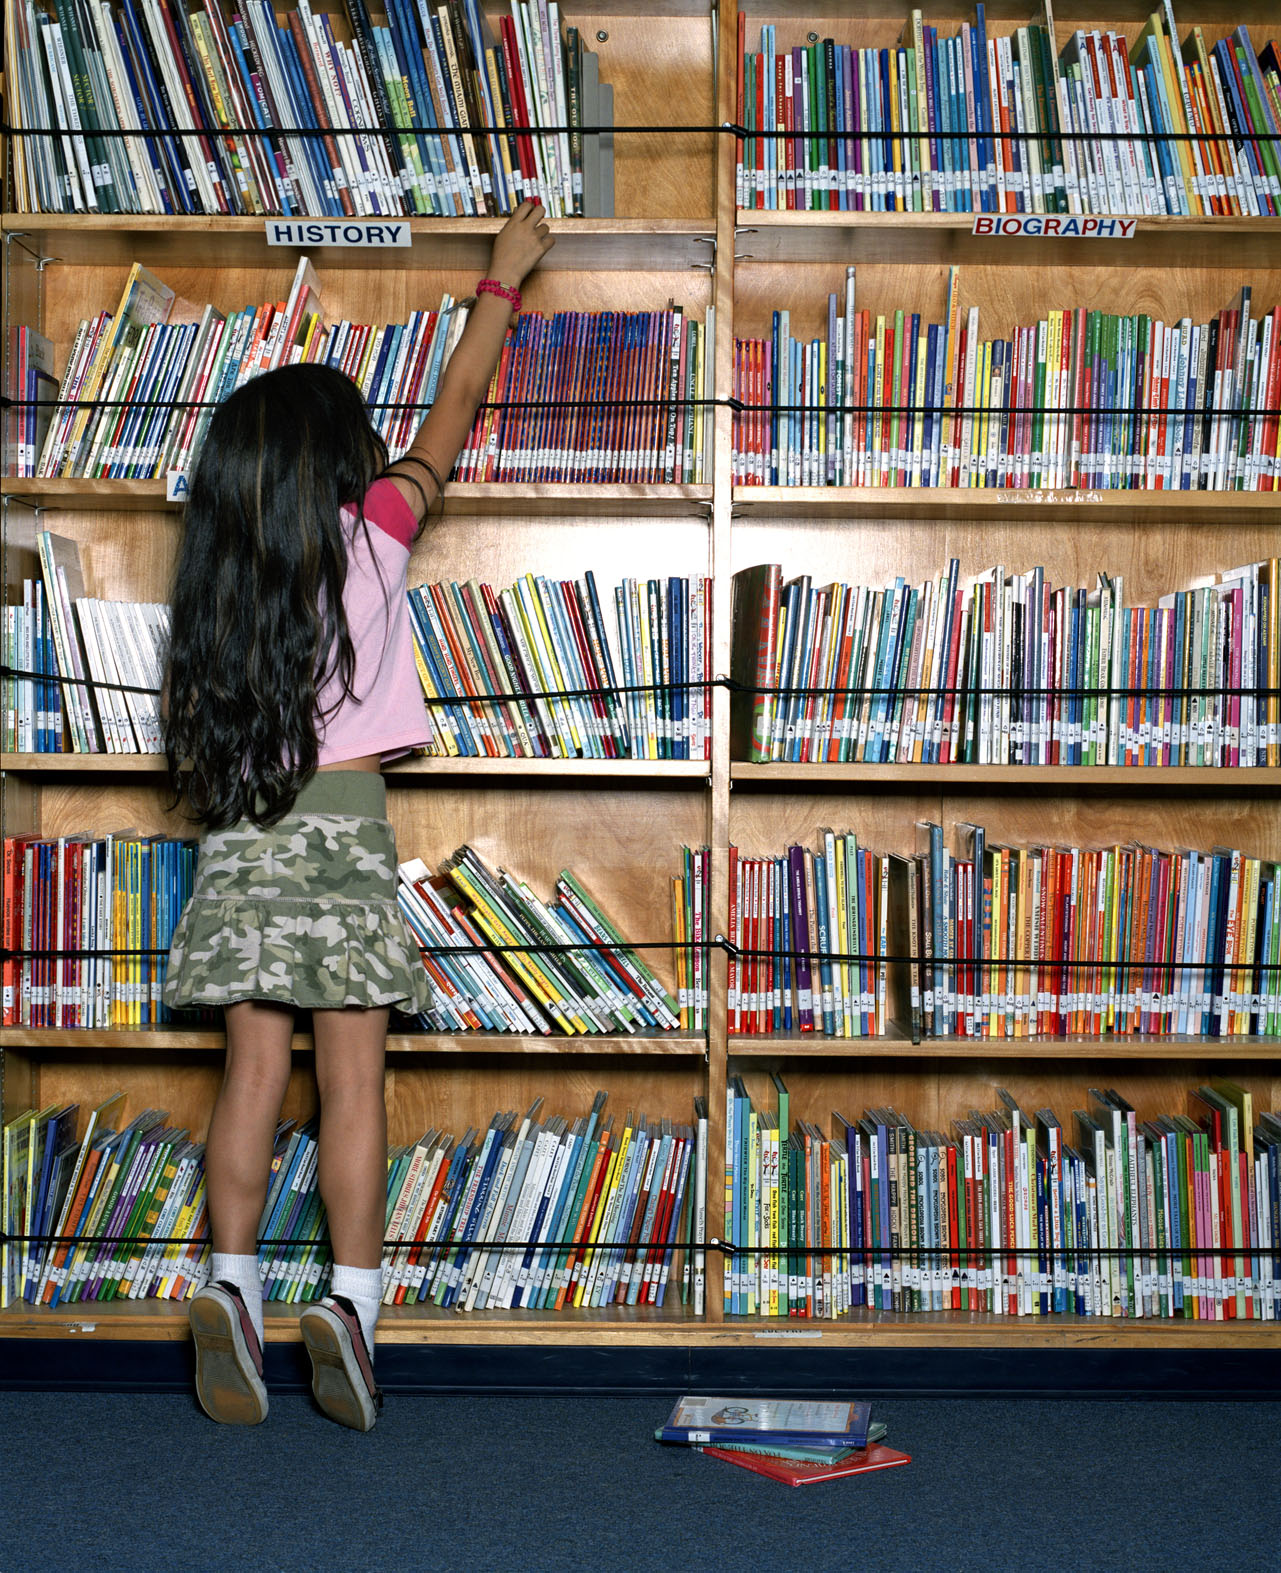 Girl (4-5 years) standing on tip toes reaching for book on library bookshelf, rear view